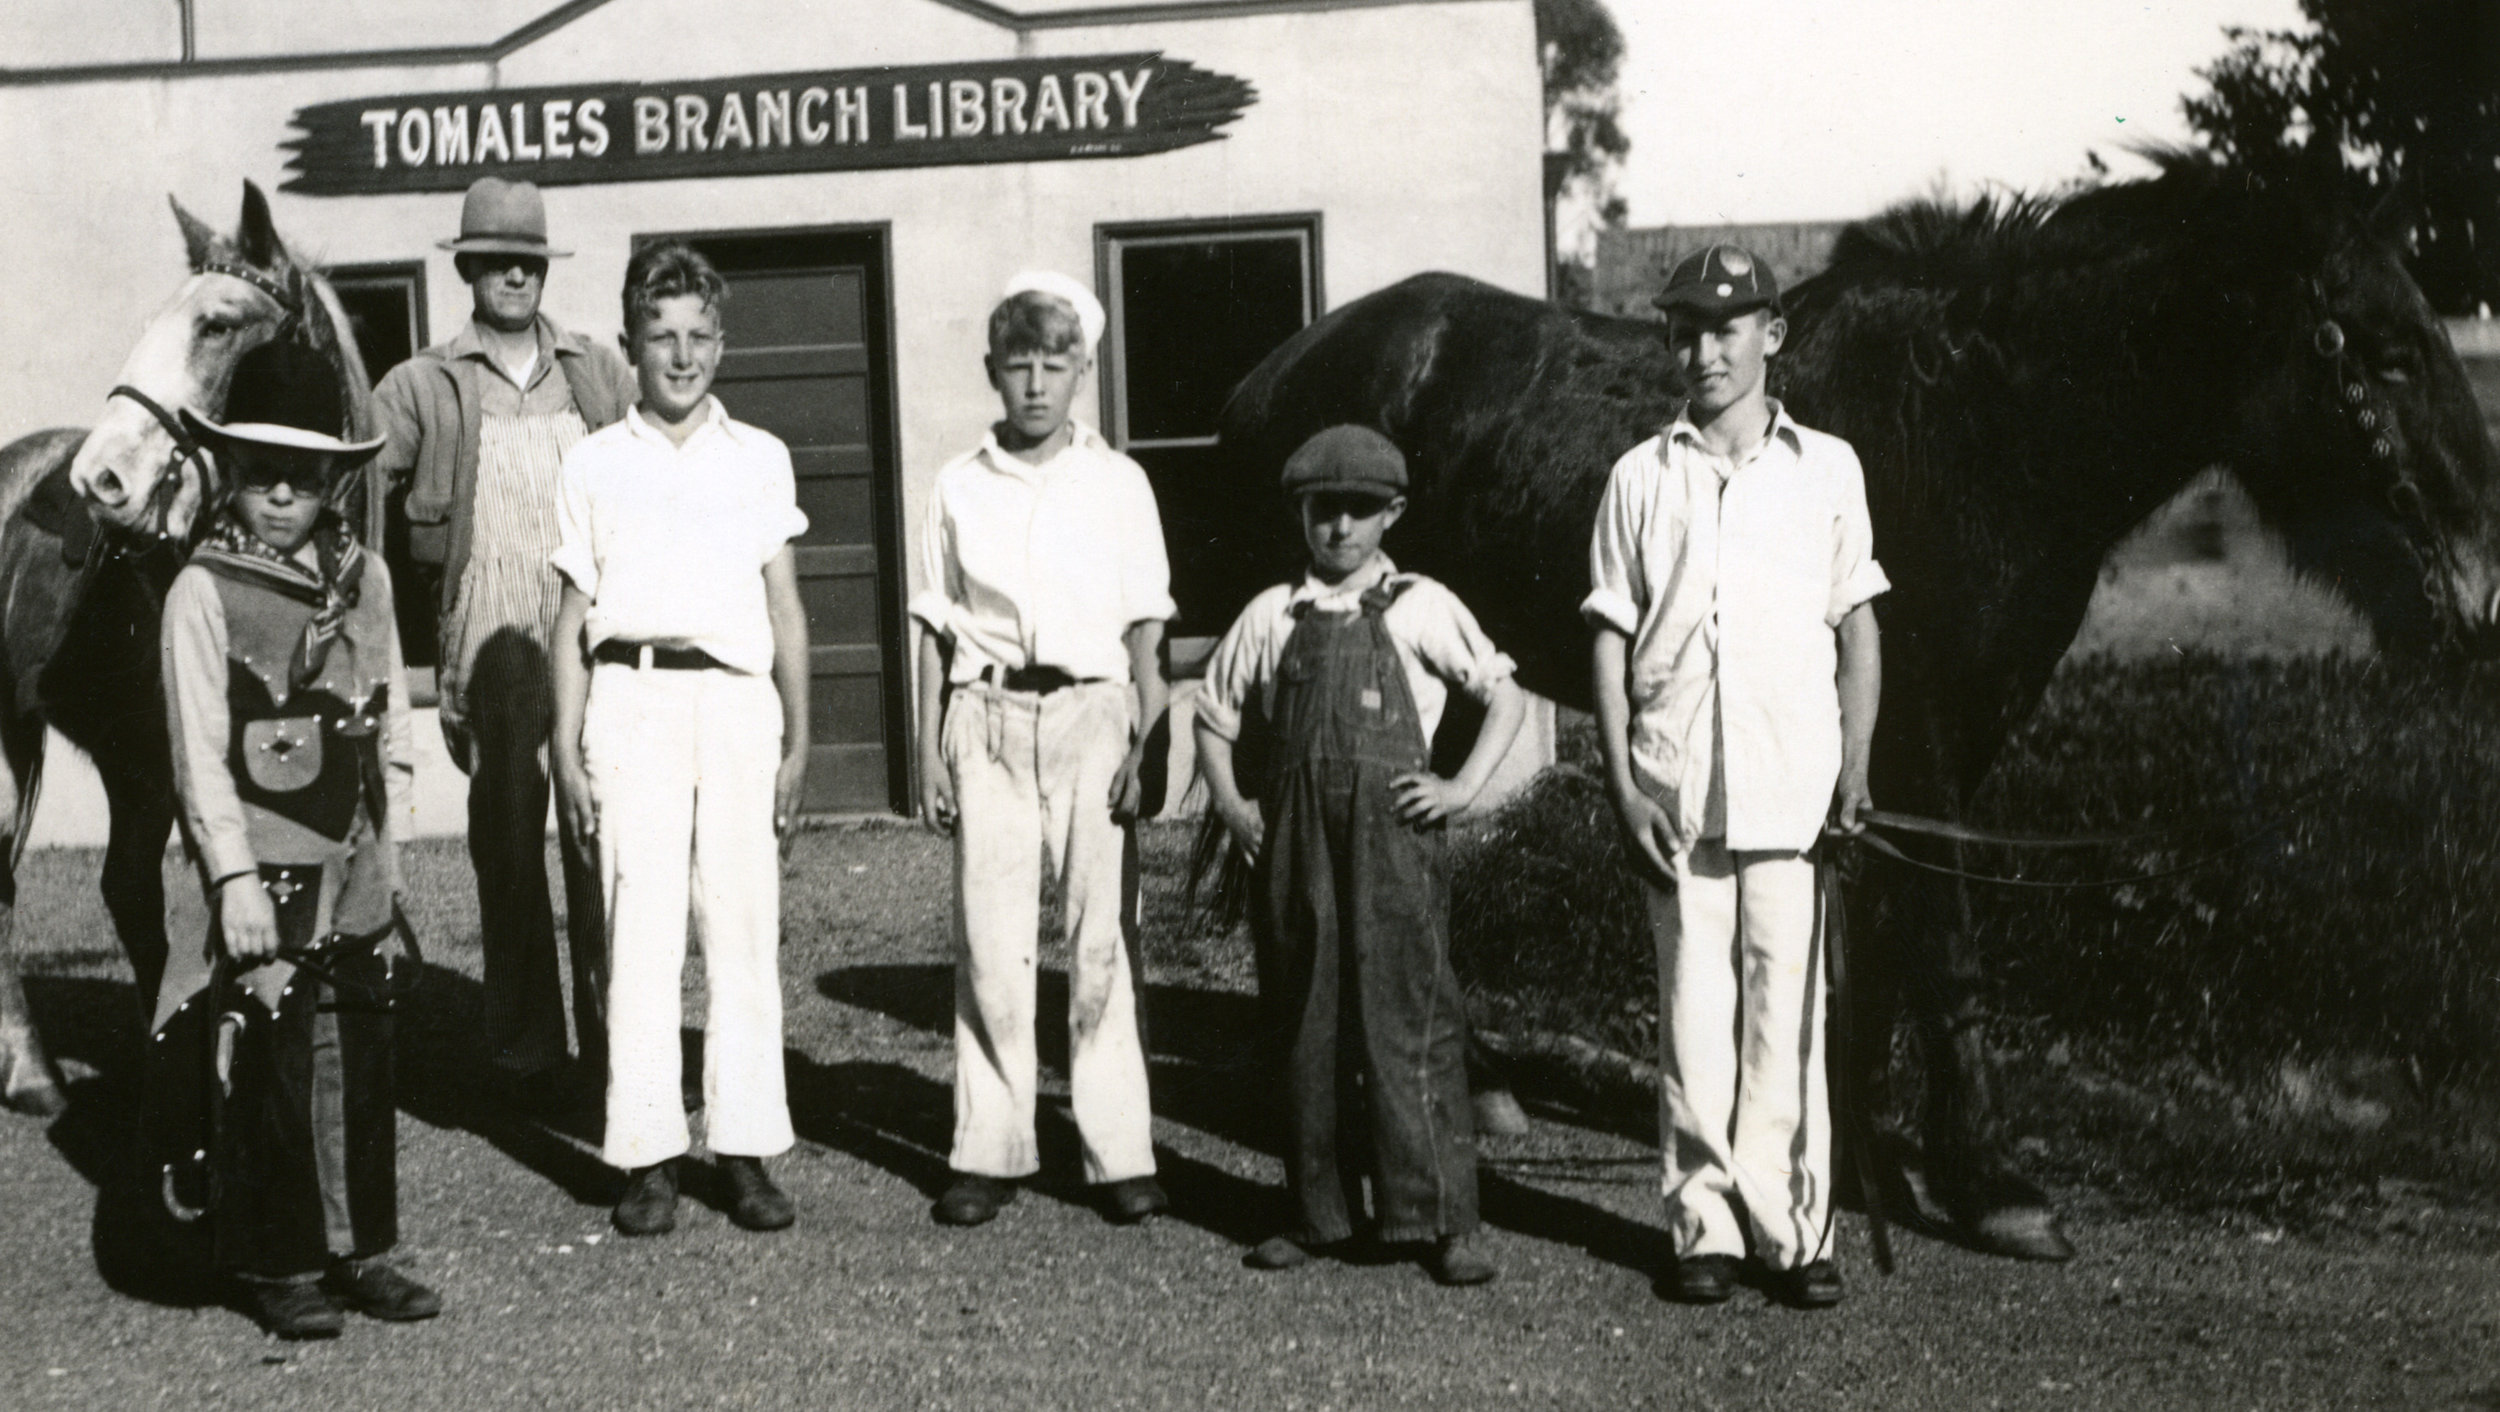 Patrons and friends outside the Tomales Town Hall Branch library c. 1930s. Photo: Ella Jorgensen; courtesy Tomales Regional History Center.